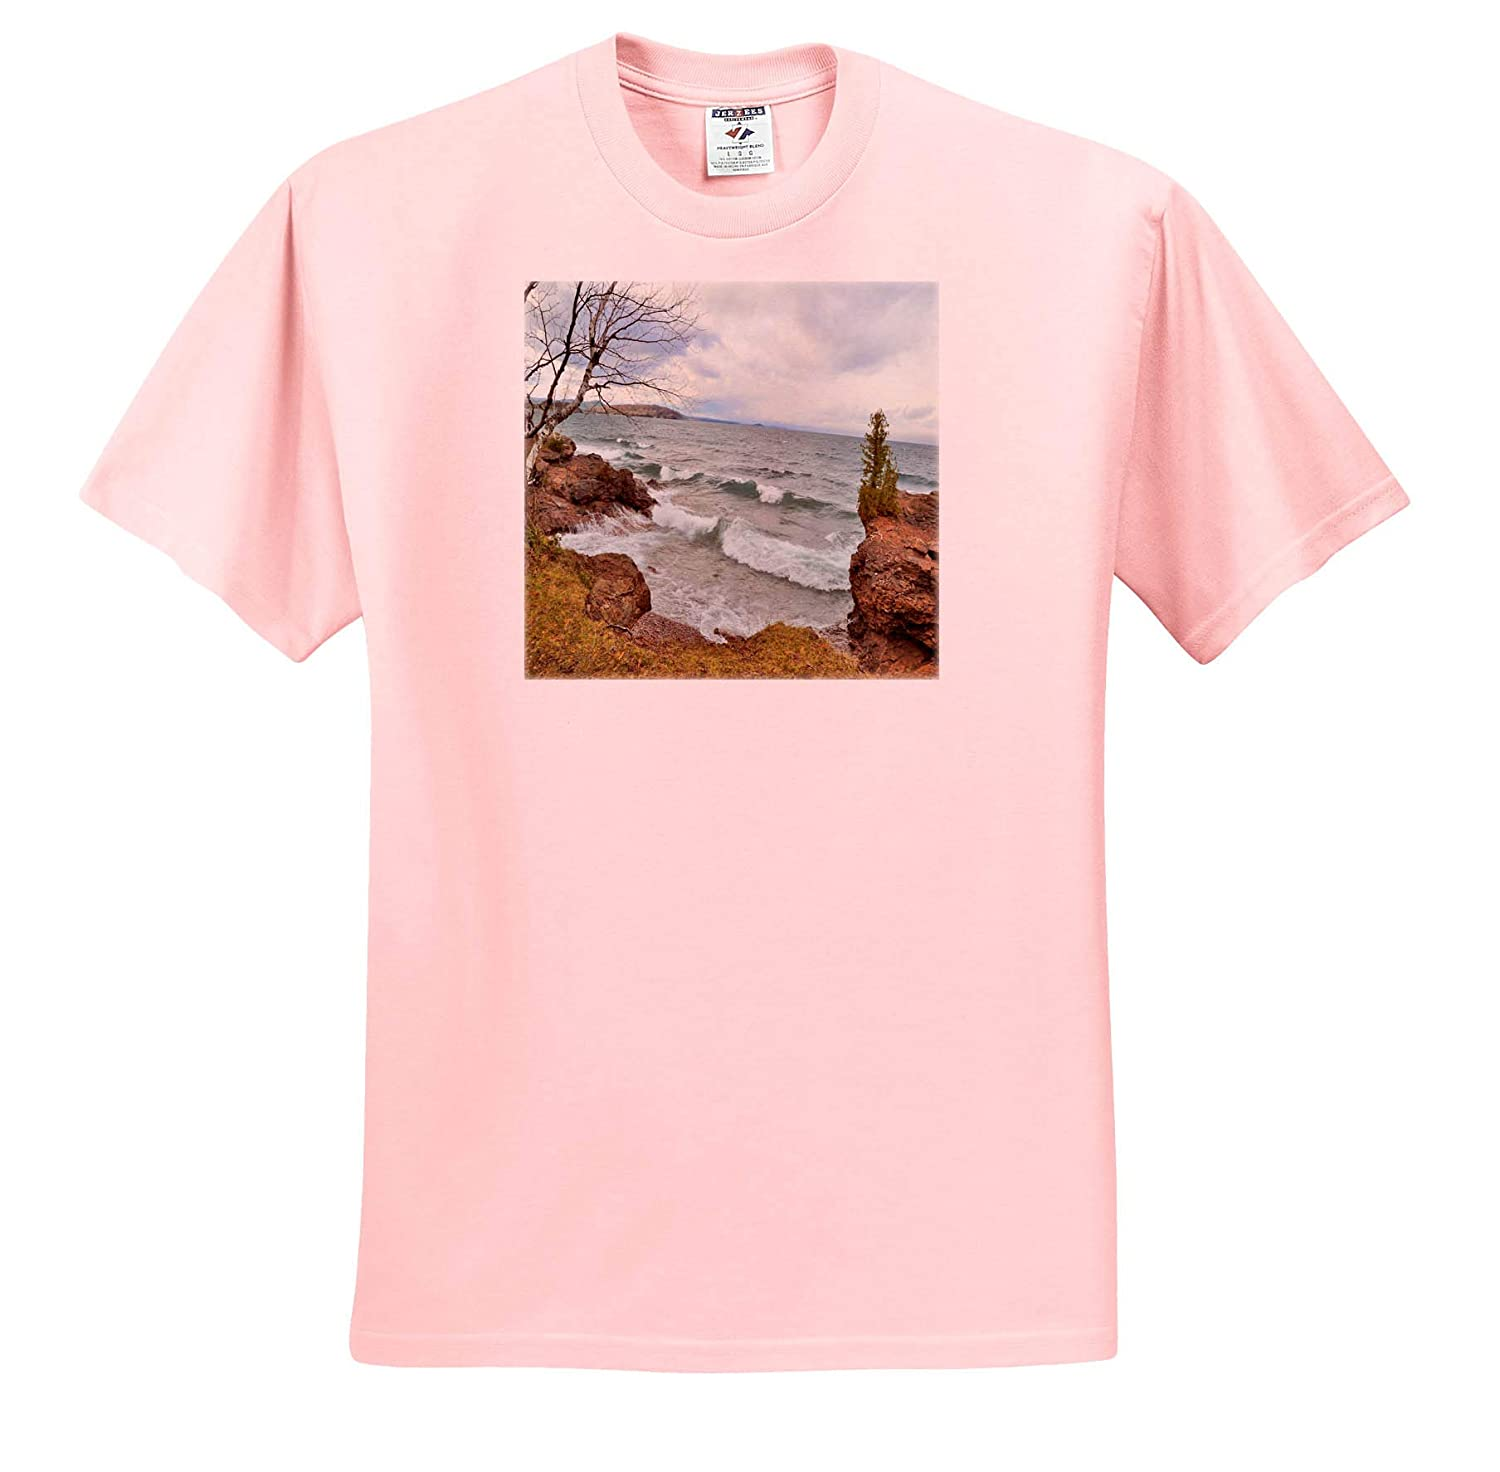 3dRose Dreamscapes by Leslie ts/_314261 Scenery Lake Superior Waves in November Adult T-Shirt XL